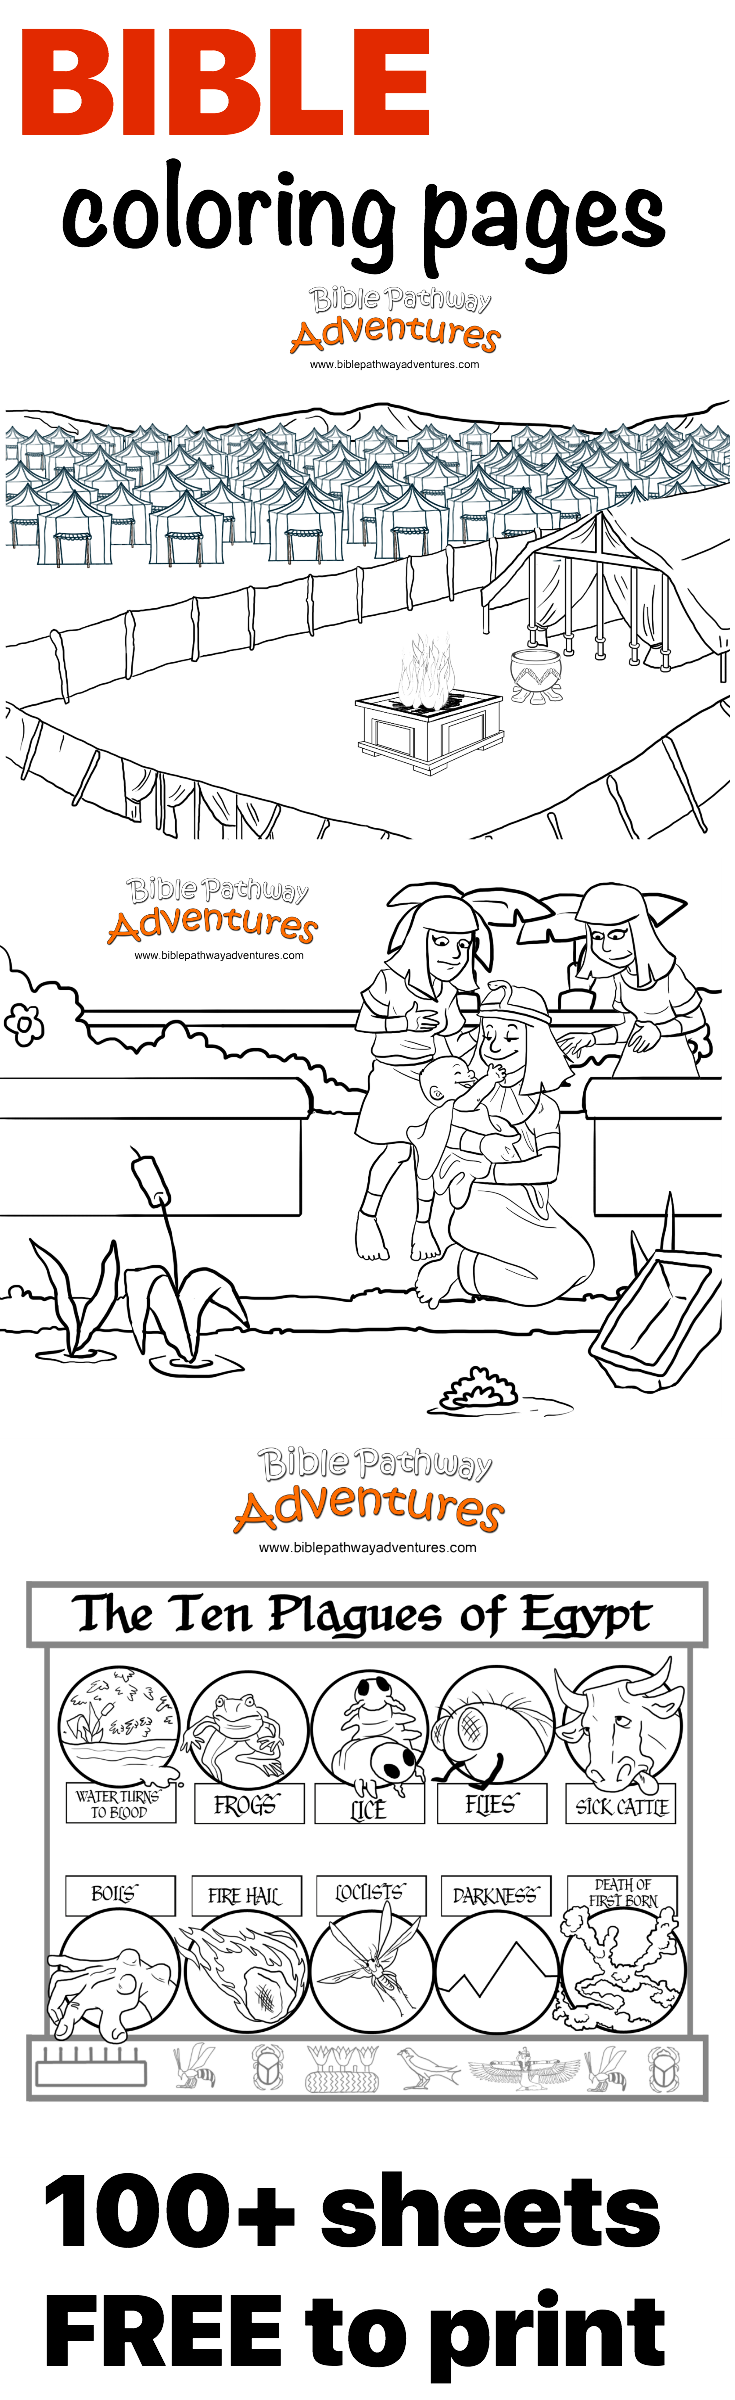 Worksheets Bible Story Worksheets free bible activities for kids coloring pages pinterest 100 based and worksheets printables